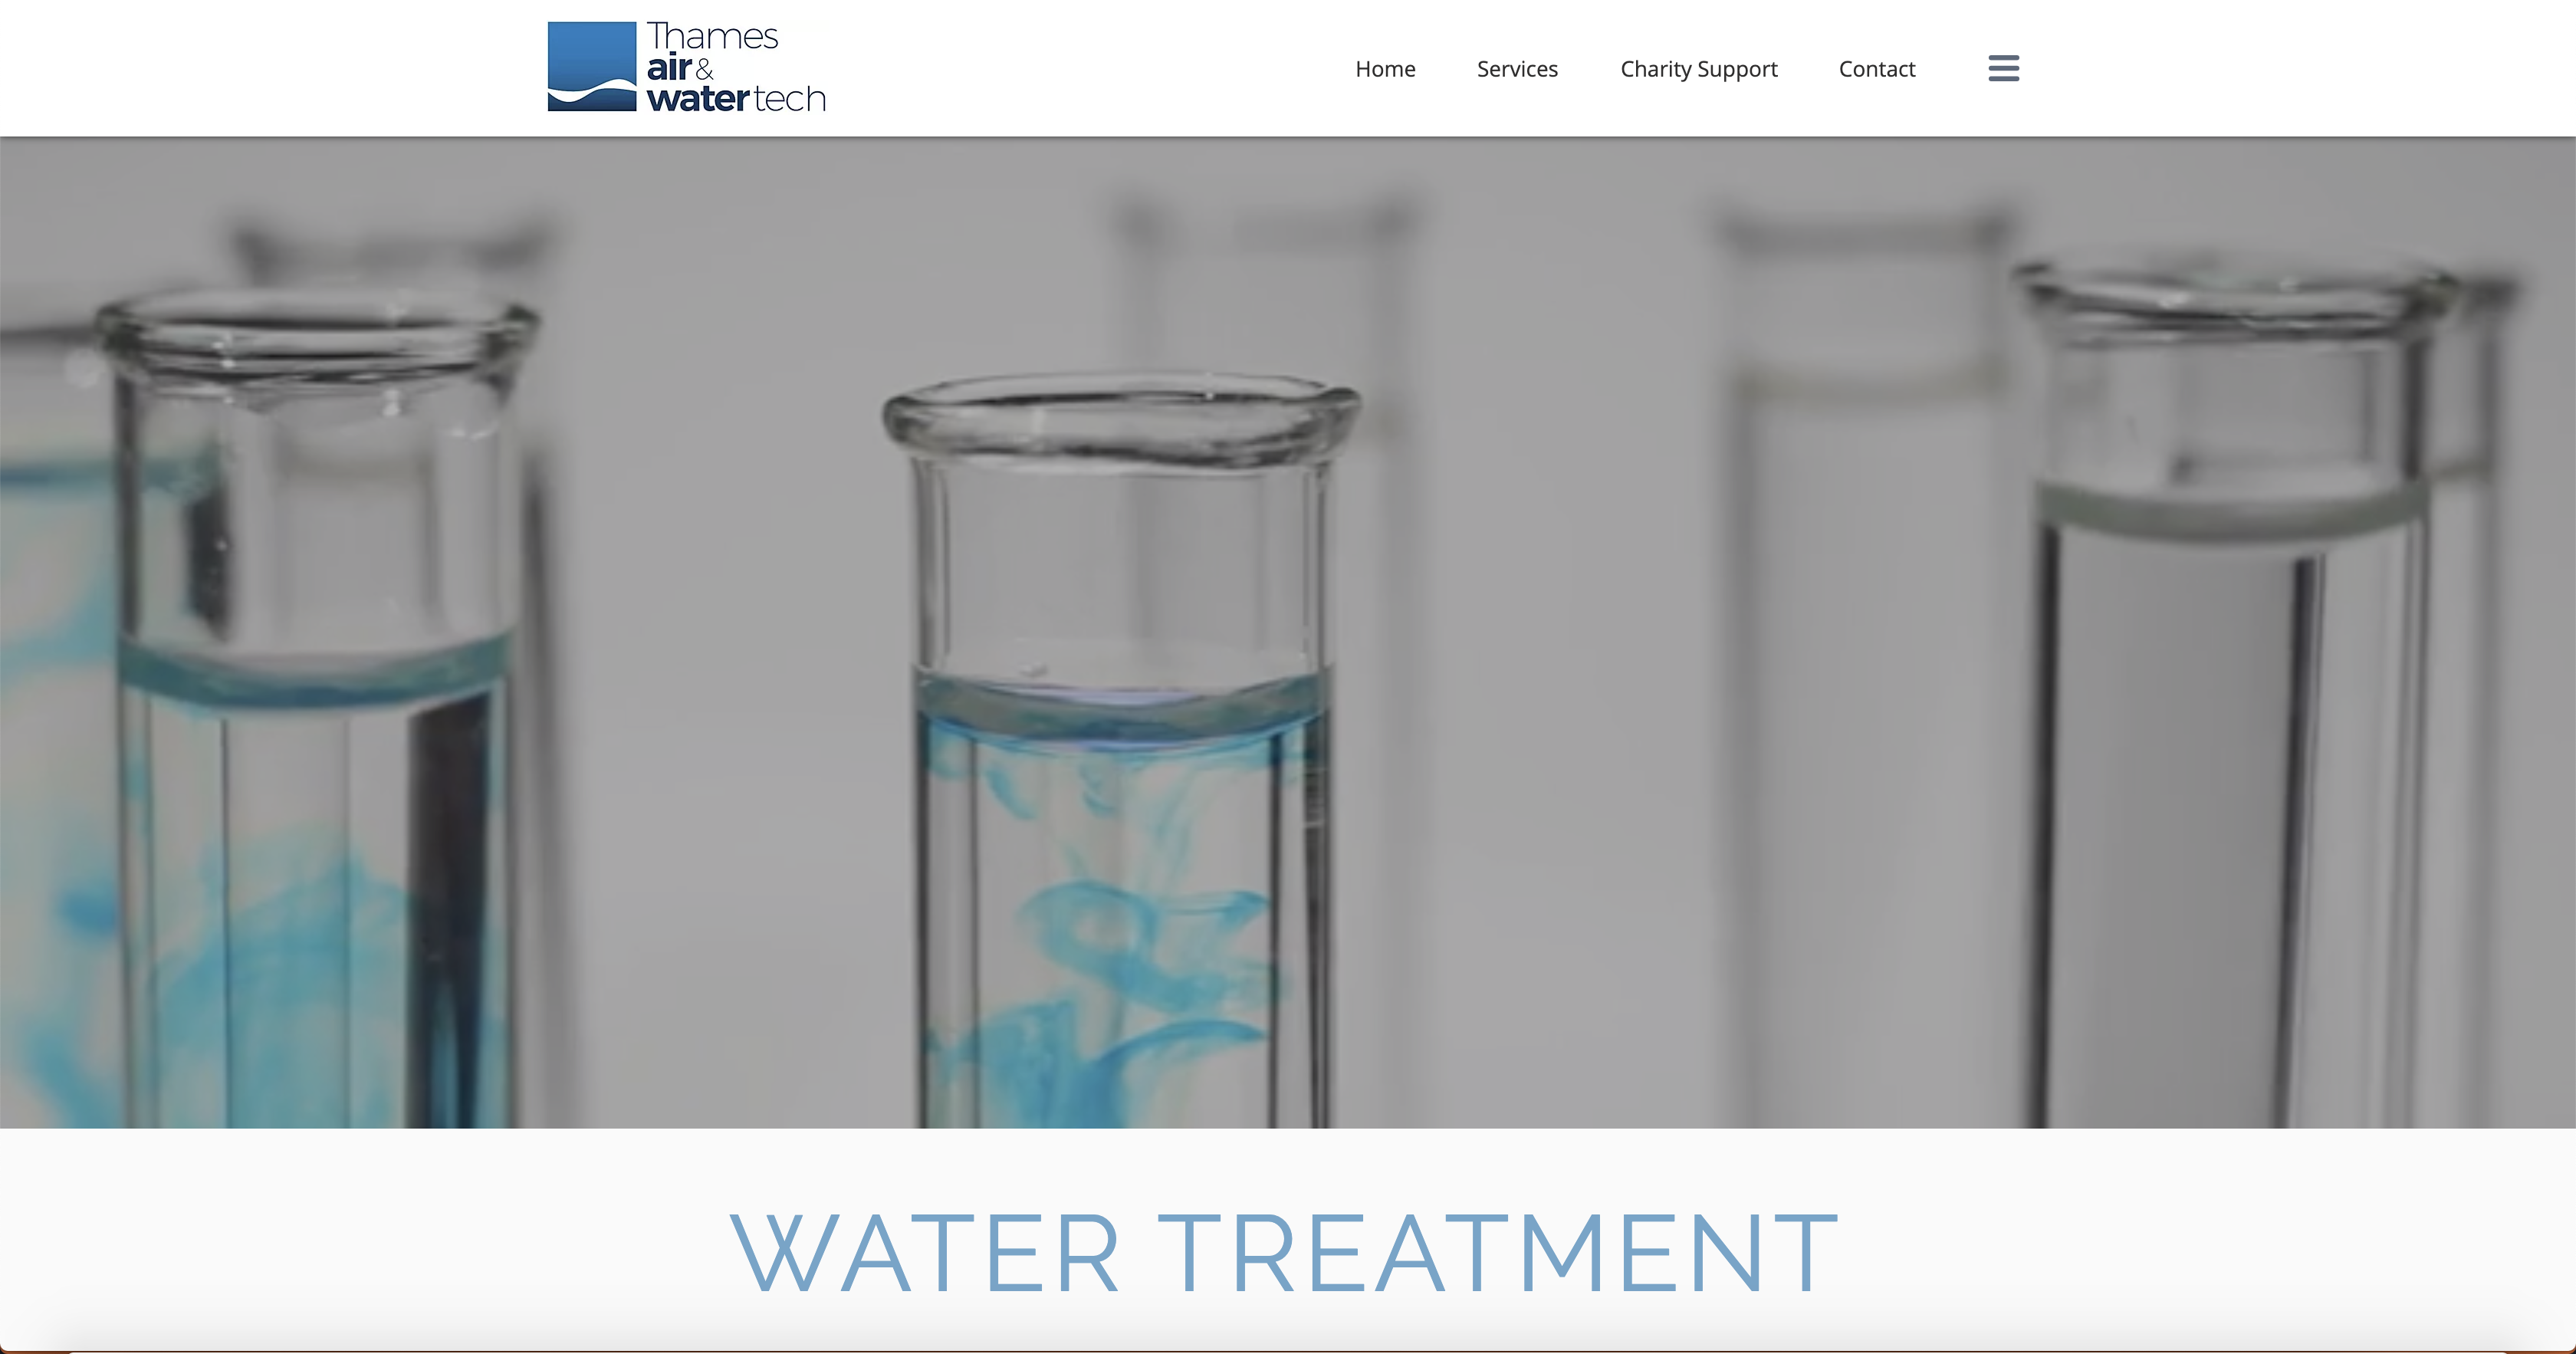 Thames Air and Water Tech | Water Treatment Page